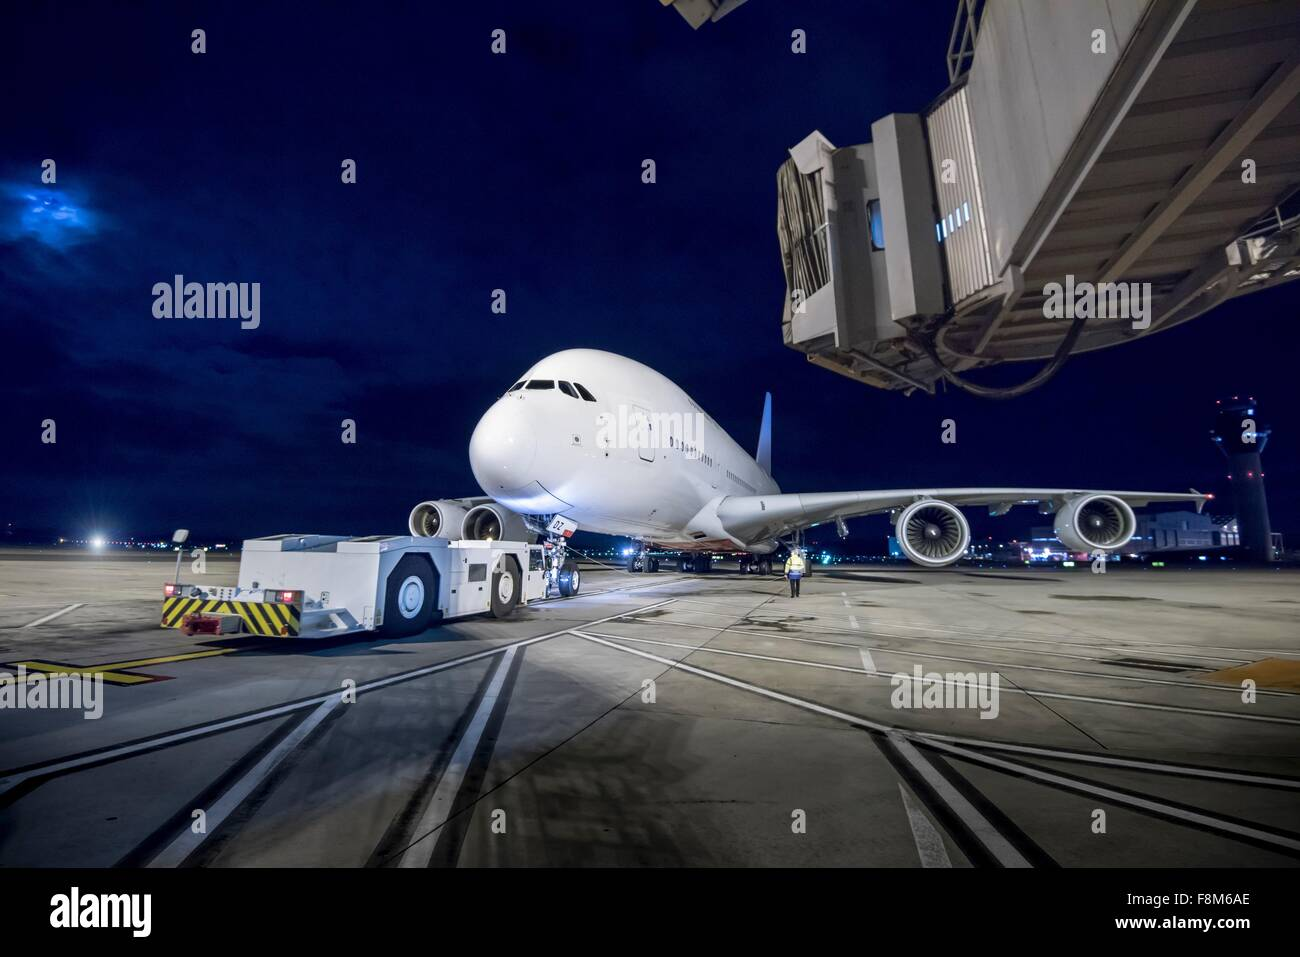 Chief engineer with A380 aircraft on runway at night - Stock Image